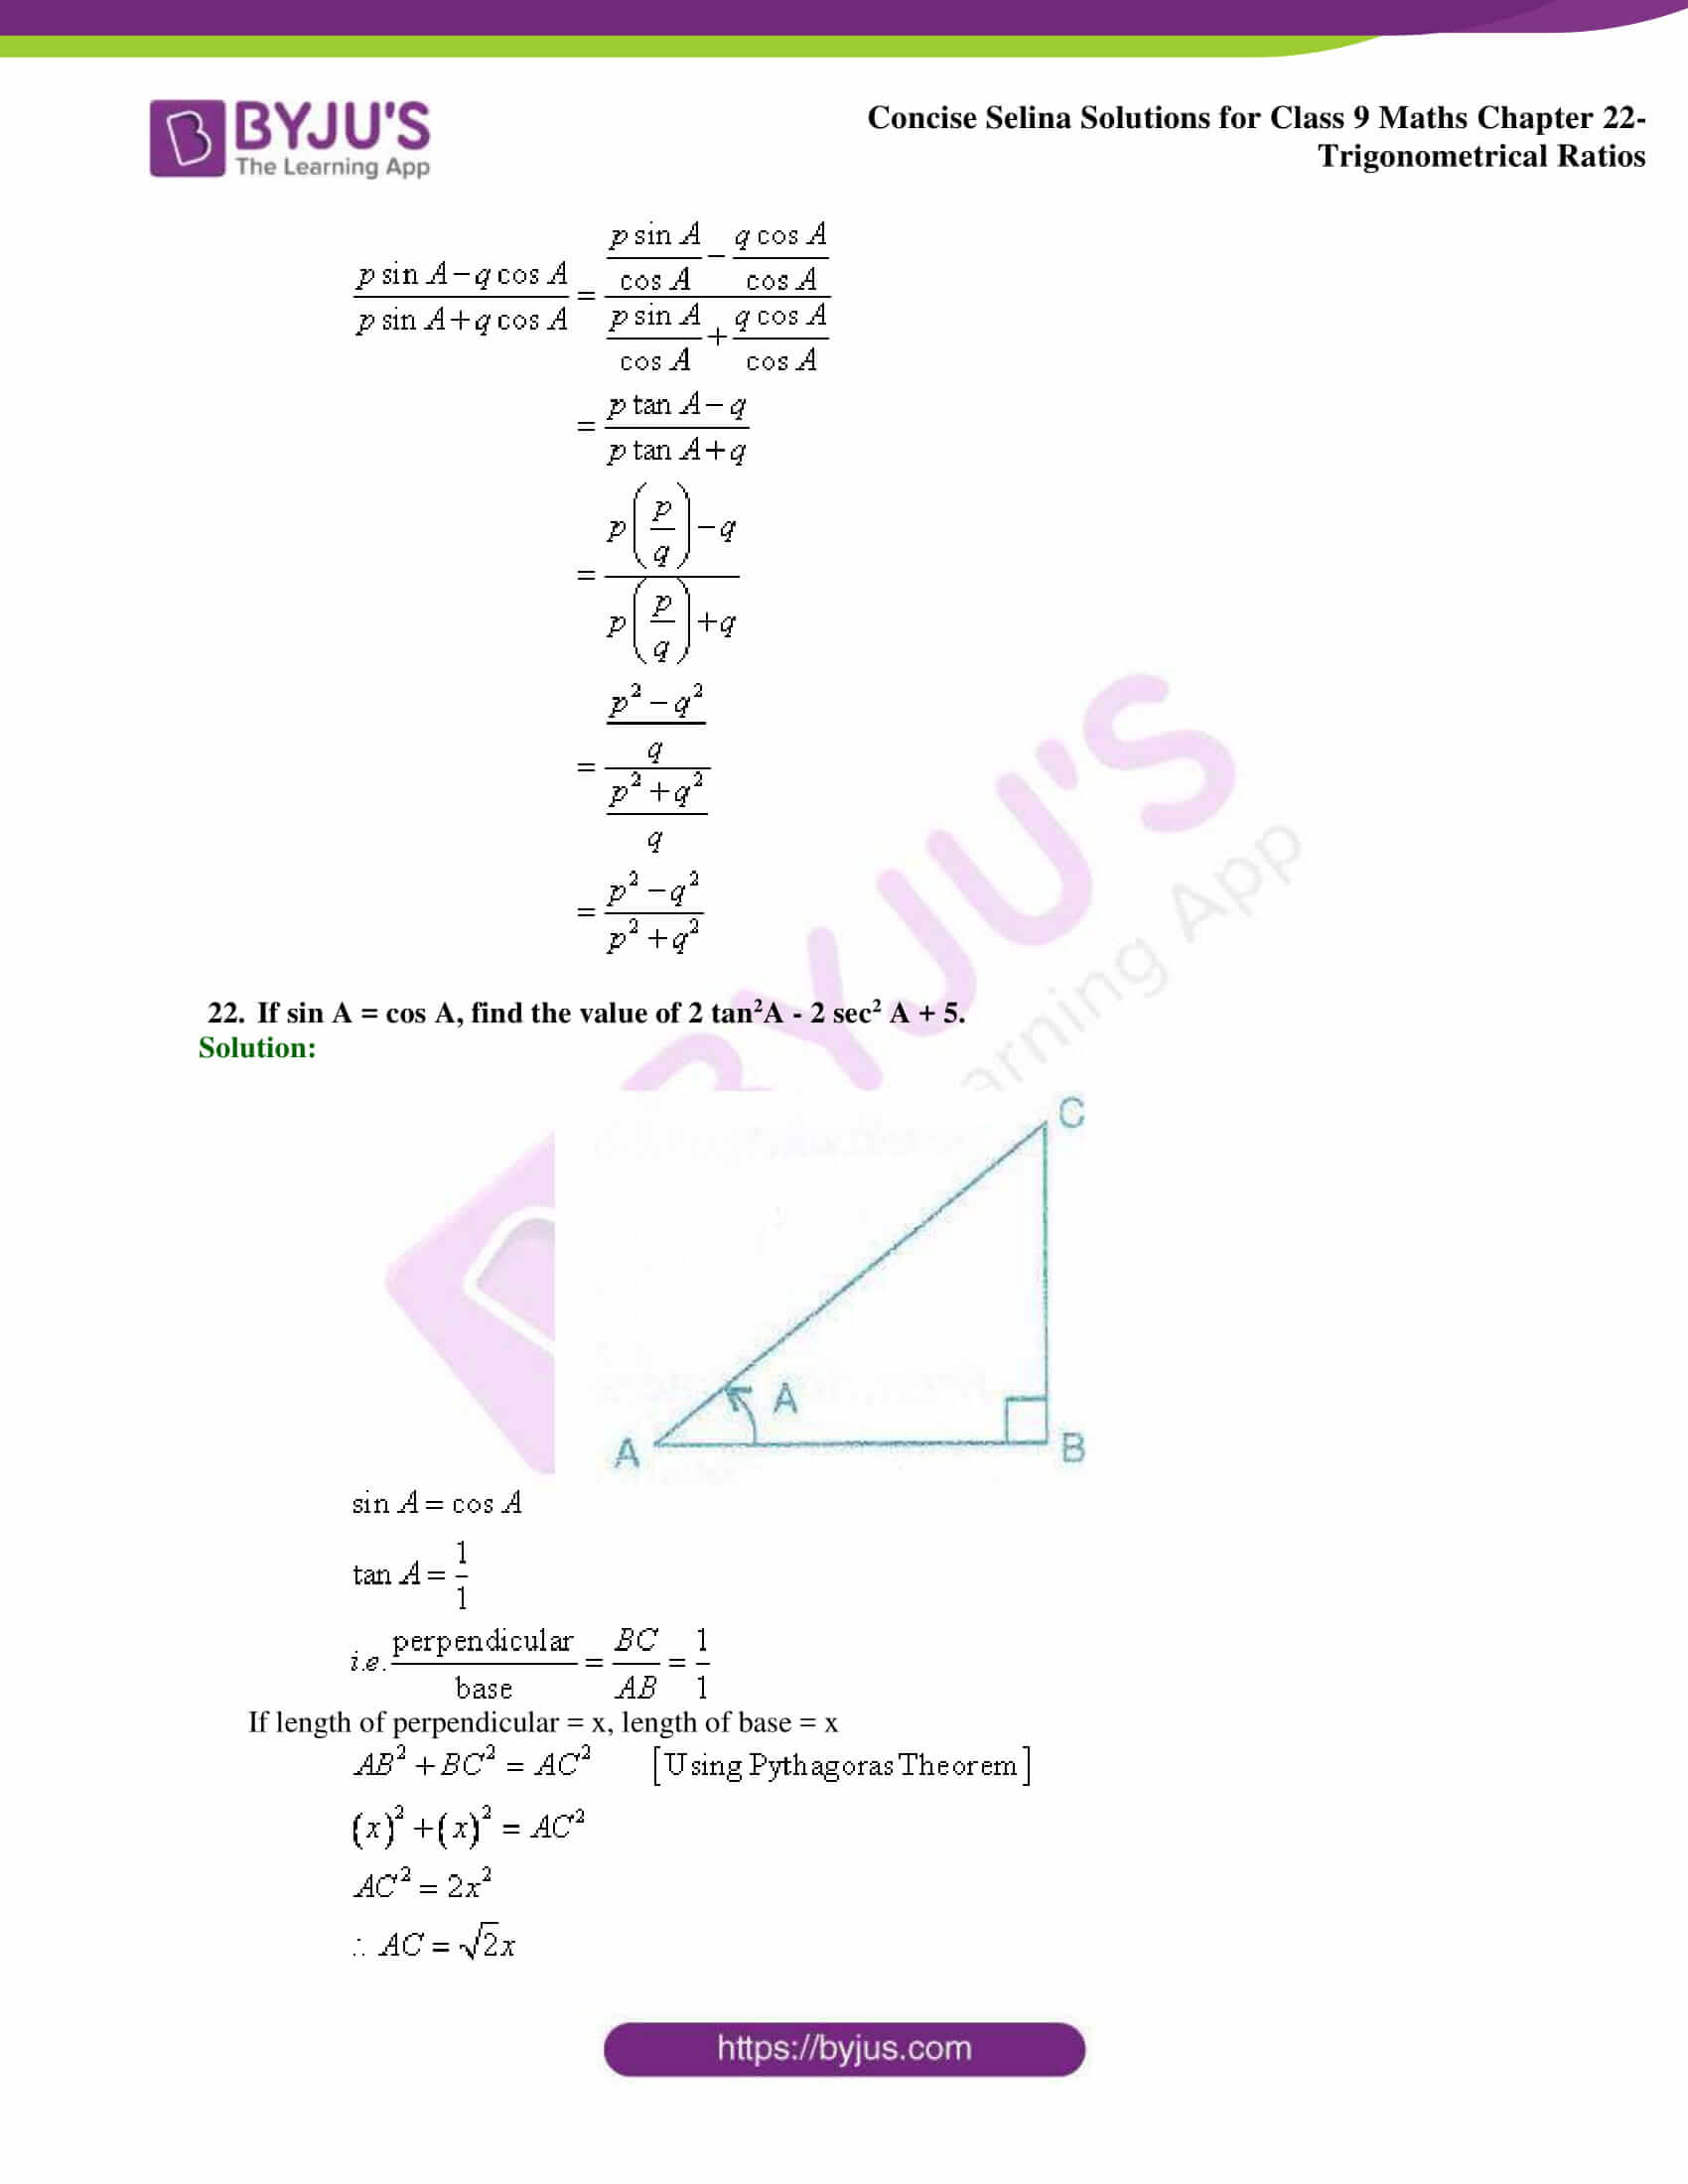 Concise Selina Solutions Class 9 Maths Chapter 22 Trigonometrical Ratios part 43